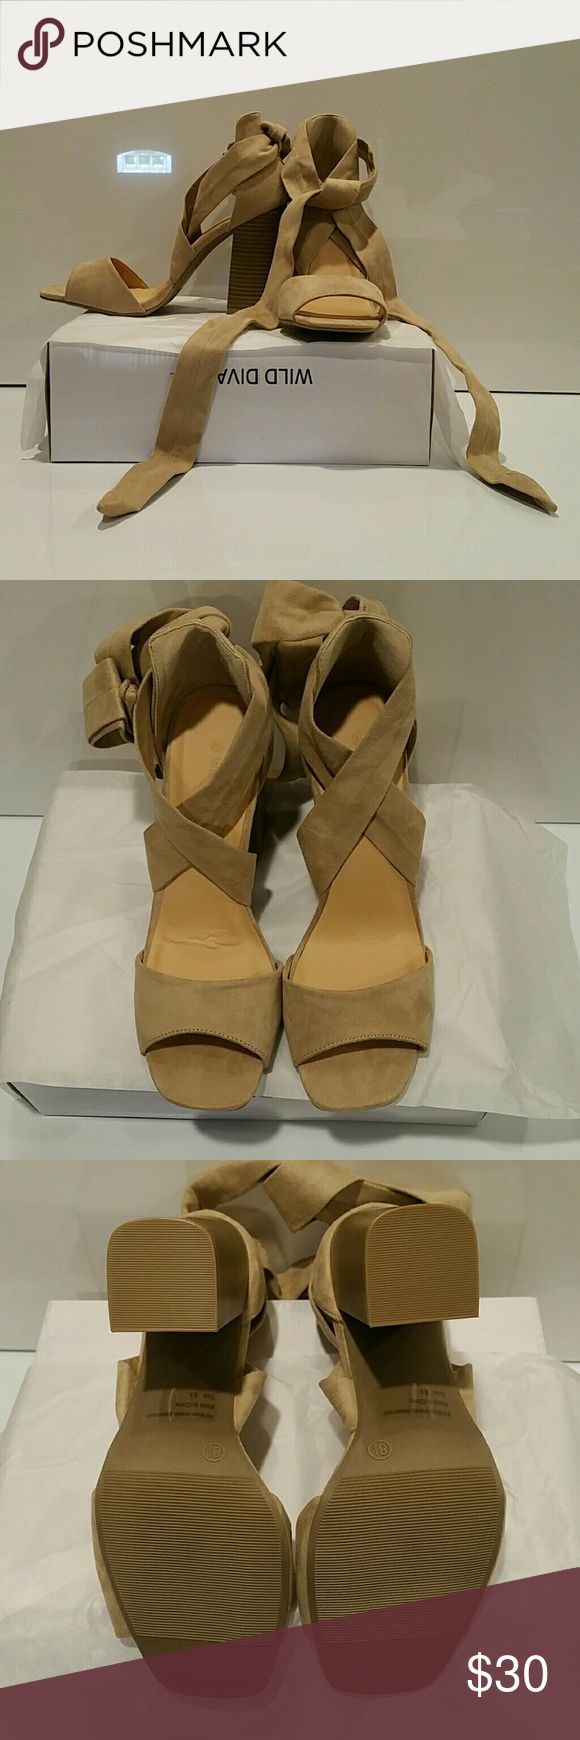 Strap Up Heels Beautiful suede strap up heels. NWT. Although one heel has creasing in the foot area, these heels have never been worn. Wild Diva Shoes Heels